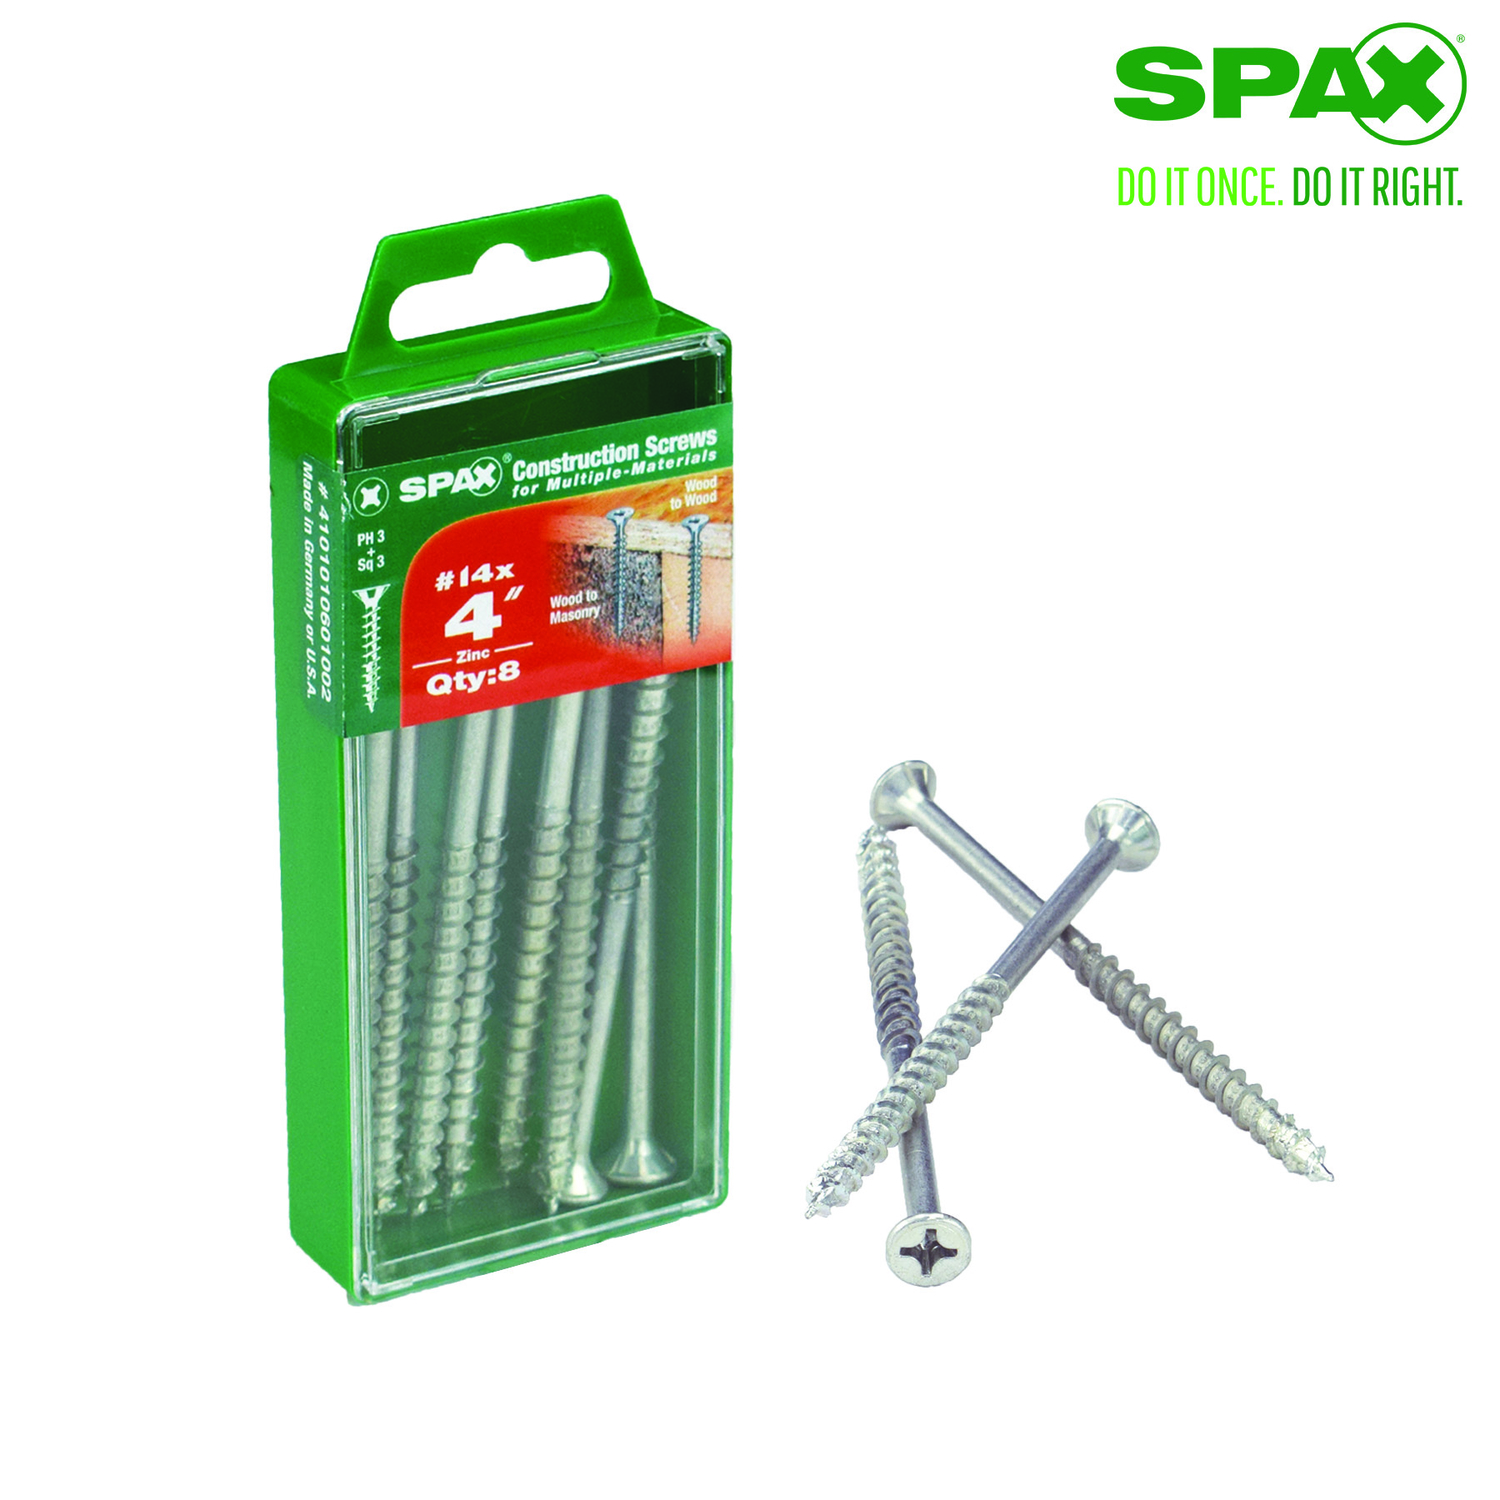 SPAX  No. 14   x 4 in. L Phillips/Square  Flat  Zinc-Plated  Steel  Multi-Purpose Screw  8 each